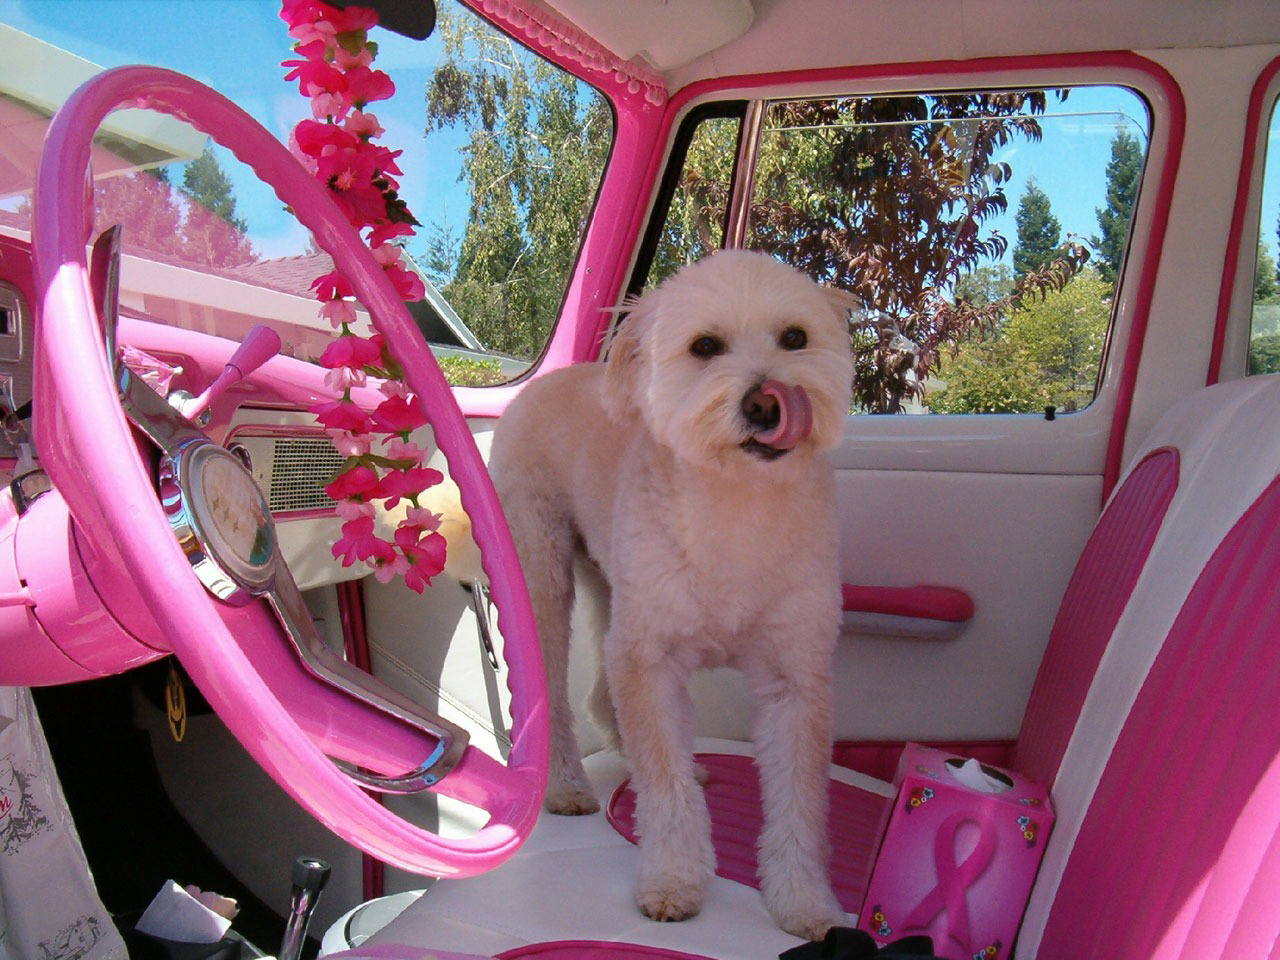 A pink interior of a campervan with a dog on the seat